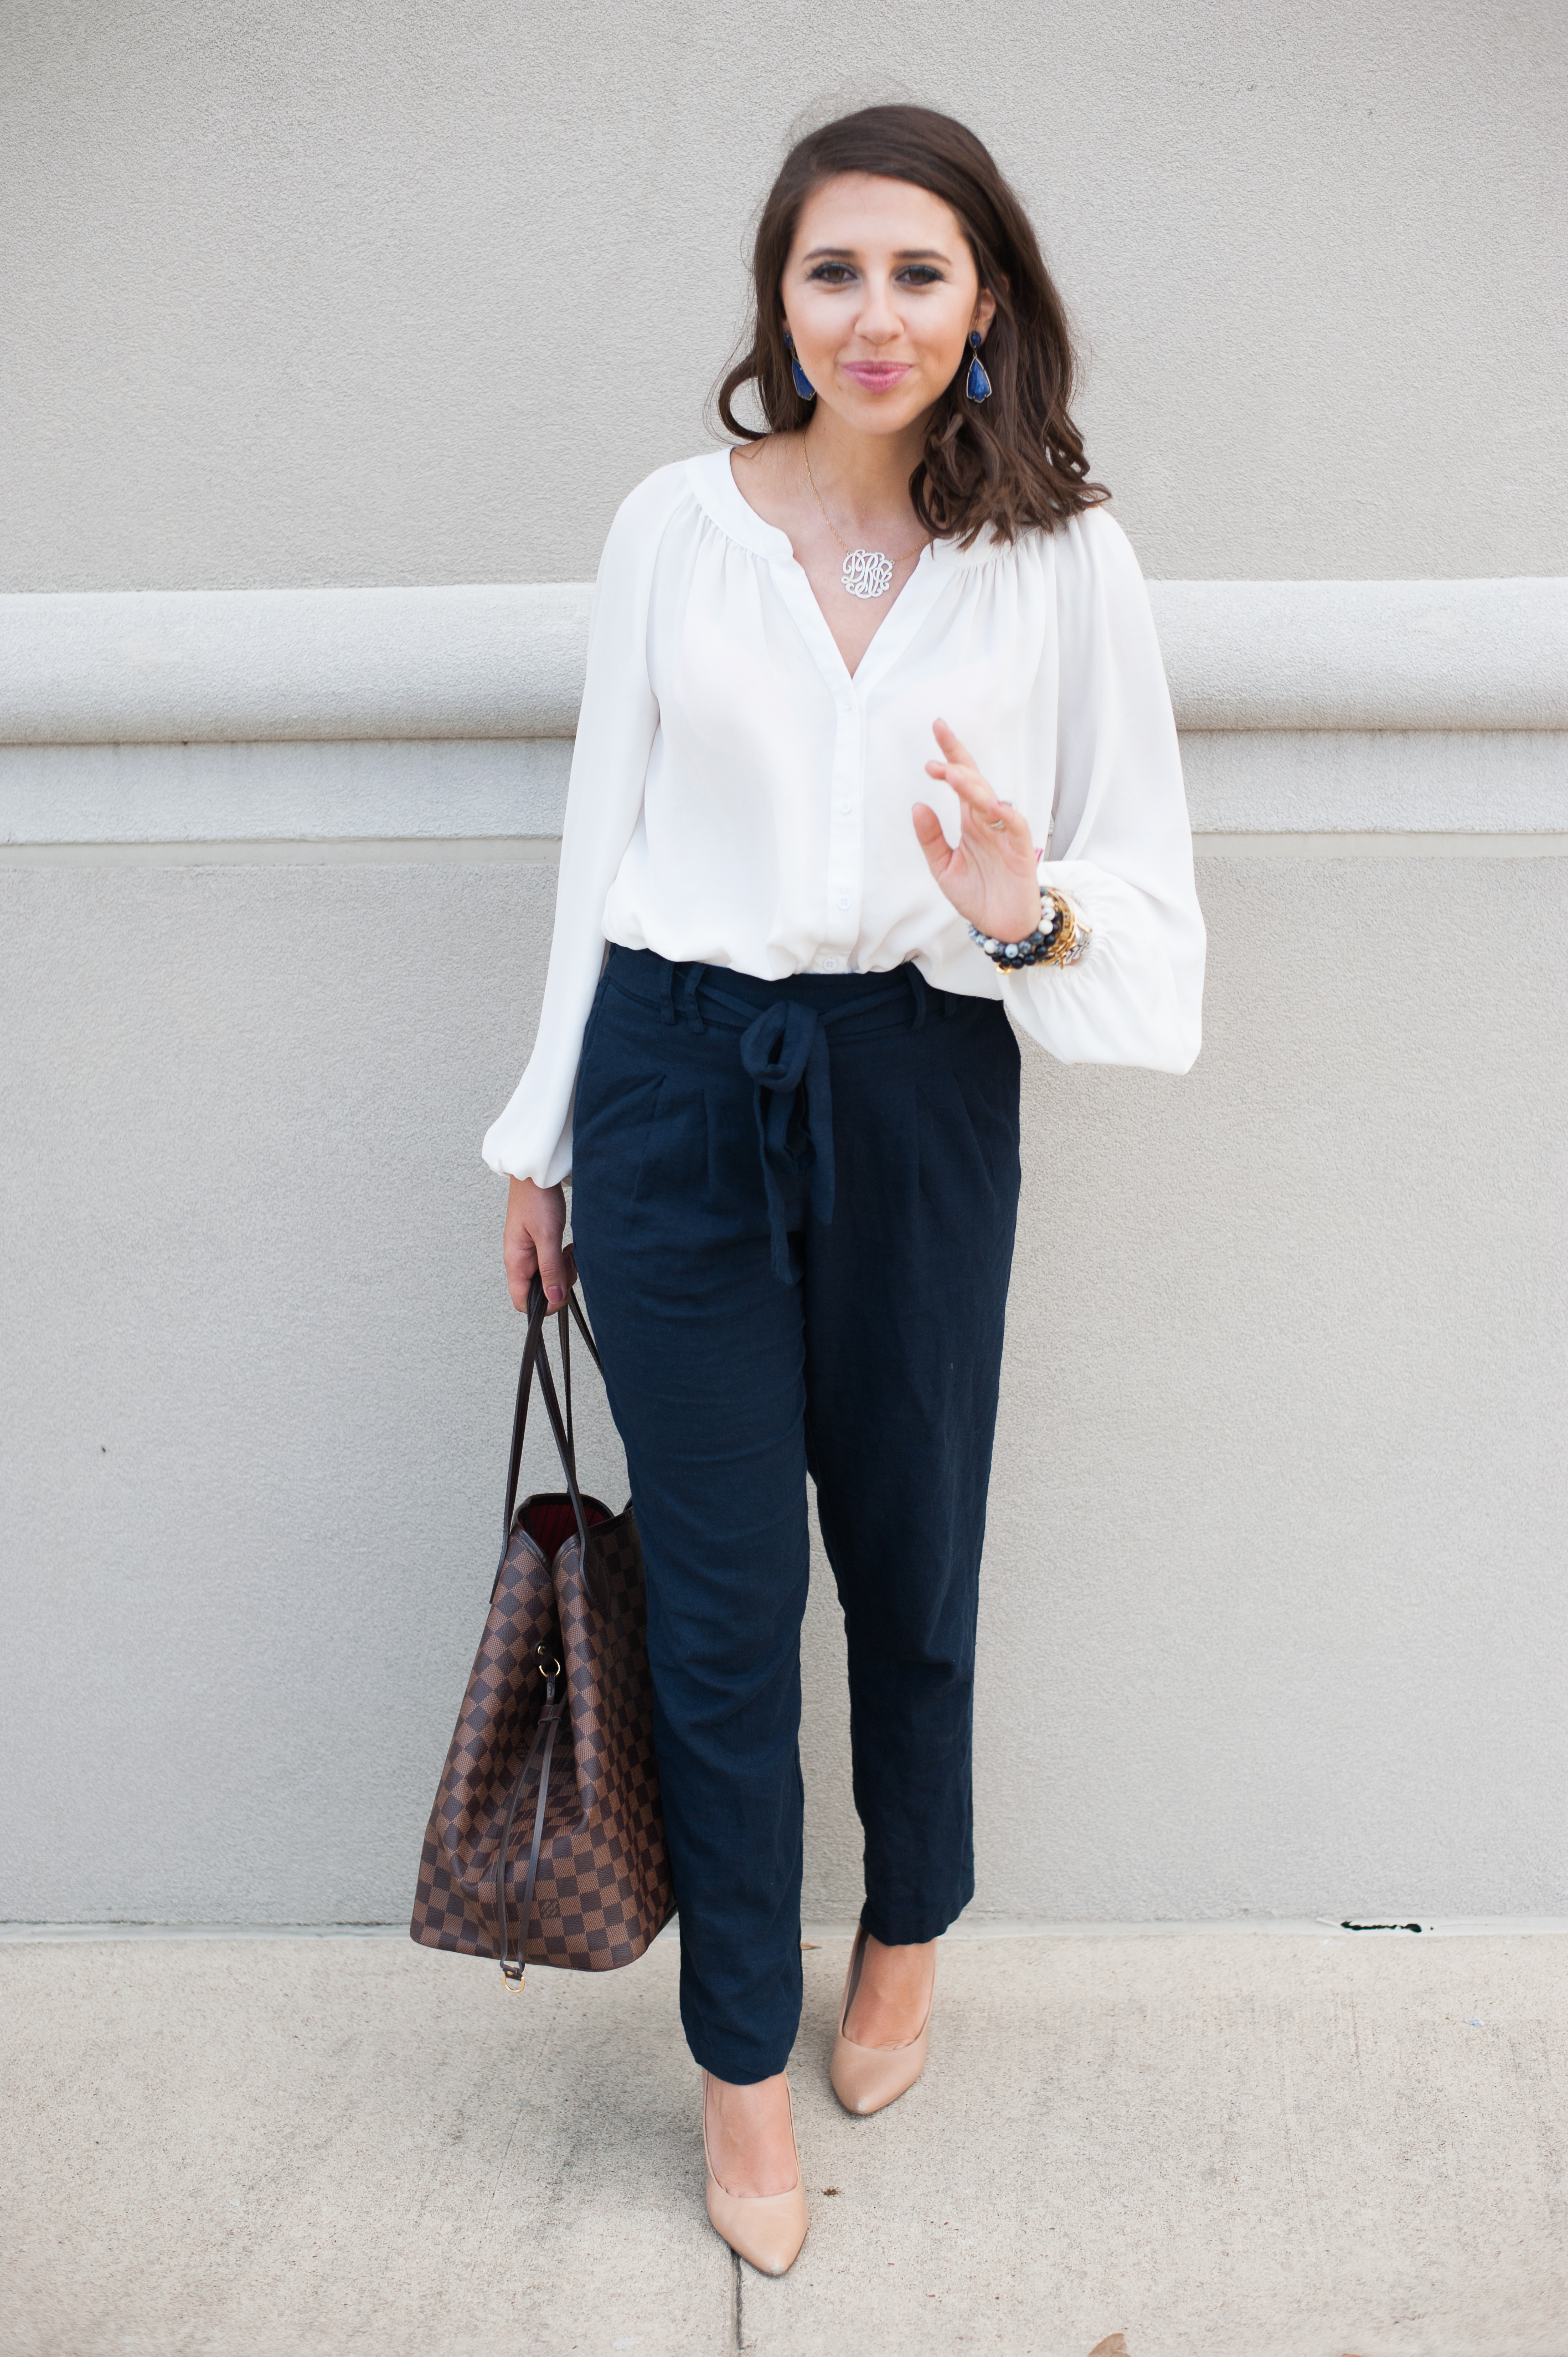 Dress Up Buttercup // A Houston-based fashion and inspiration blog developed to daily inspire your own personal style by Dede Raad | High Wasted Linen